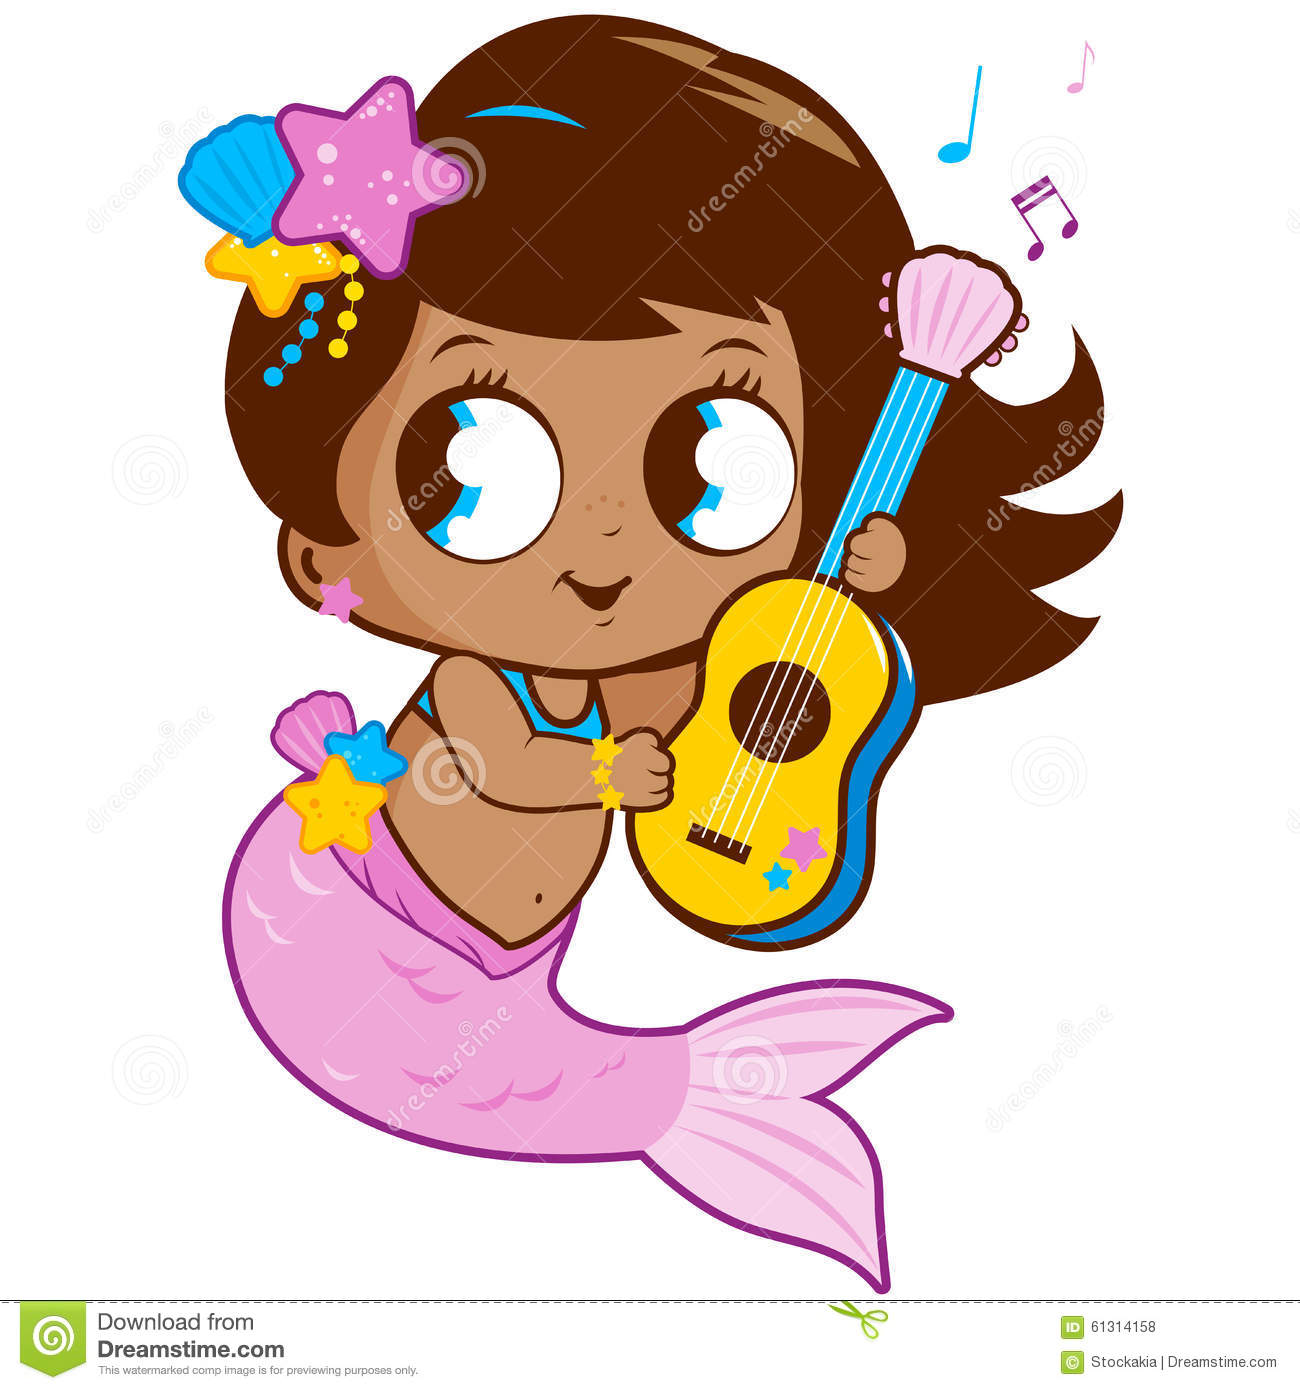 Cute mermaid playing music with her guitar.